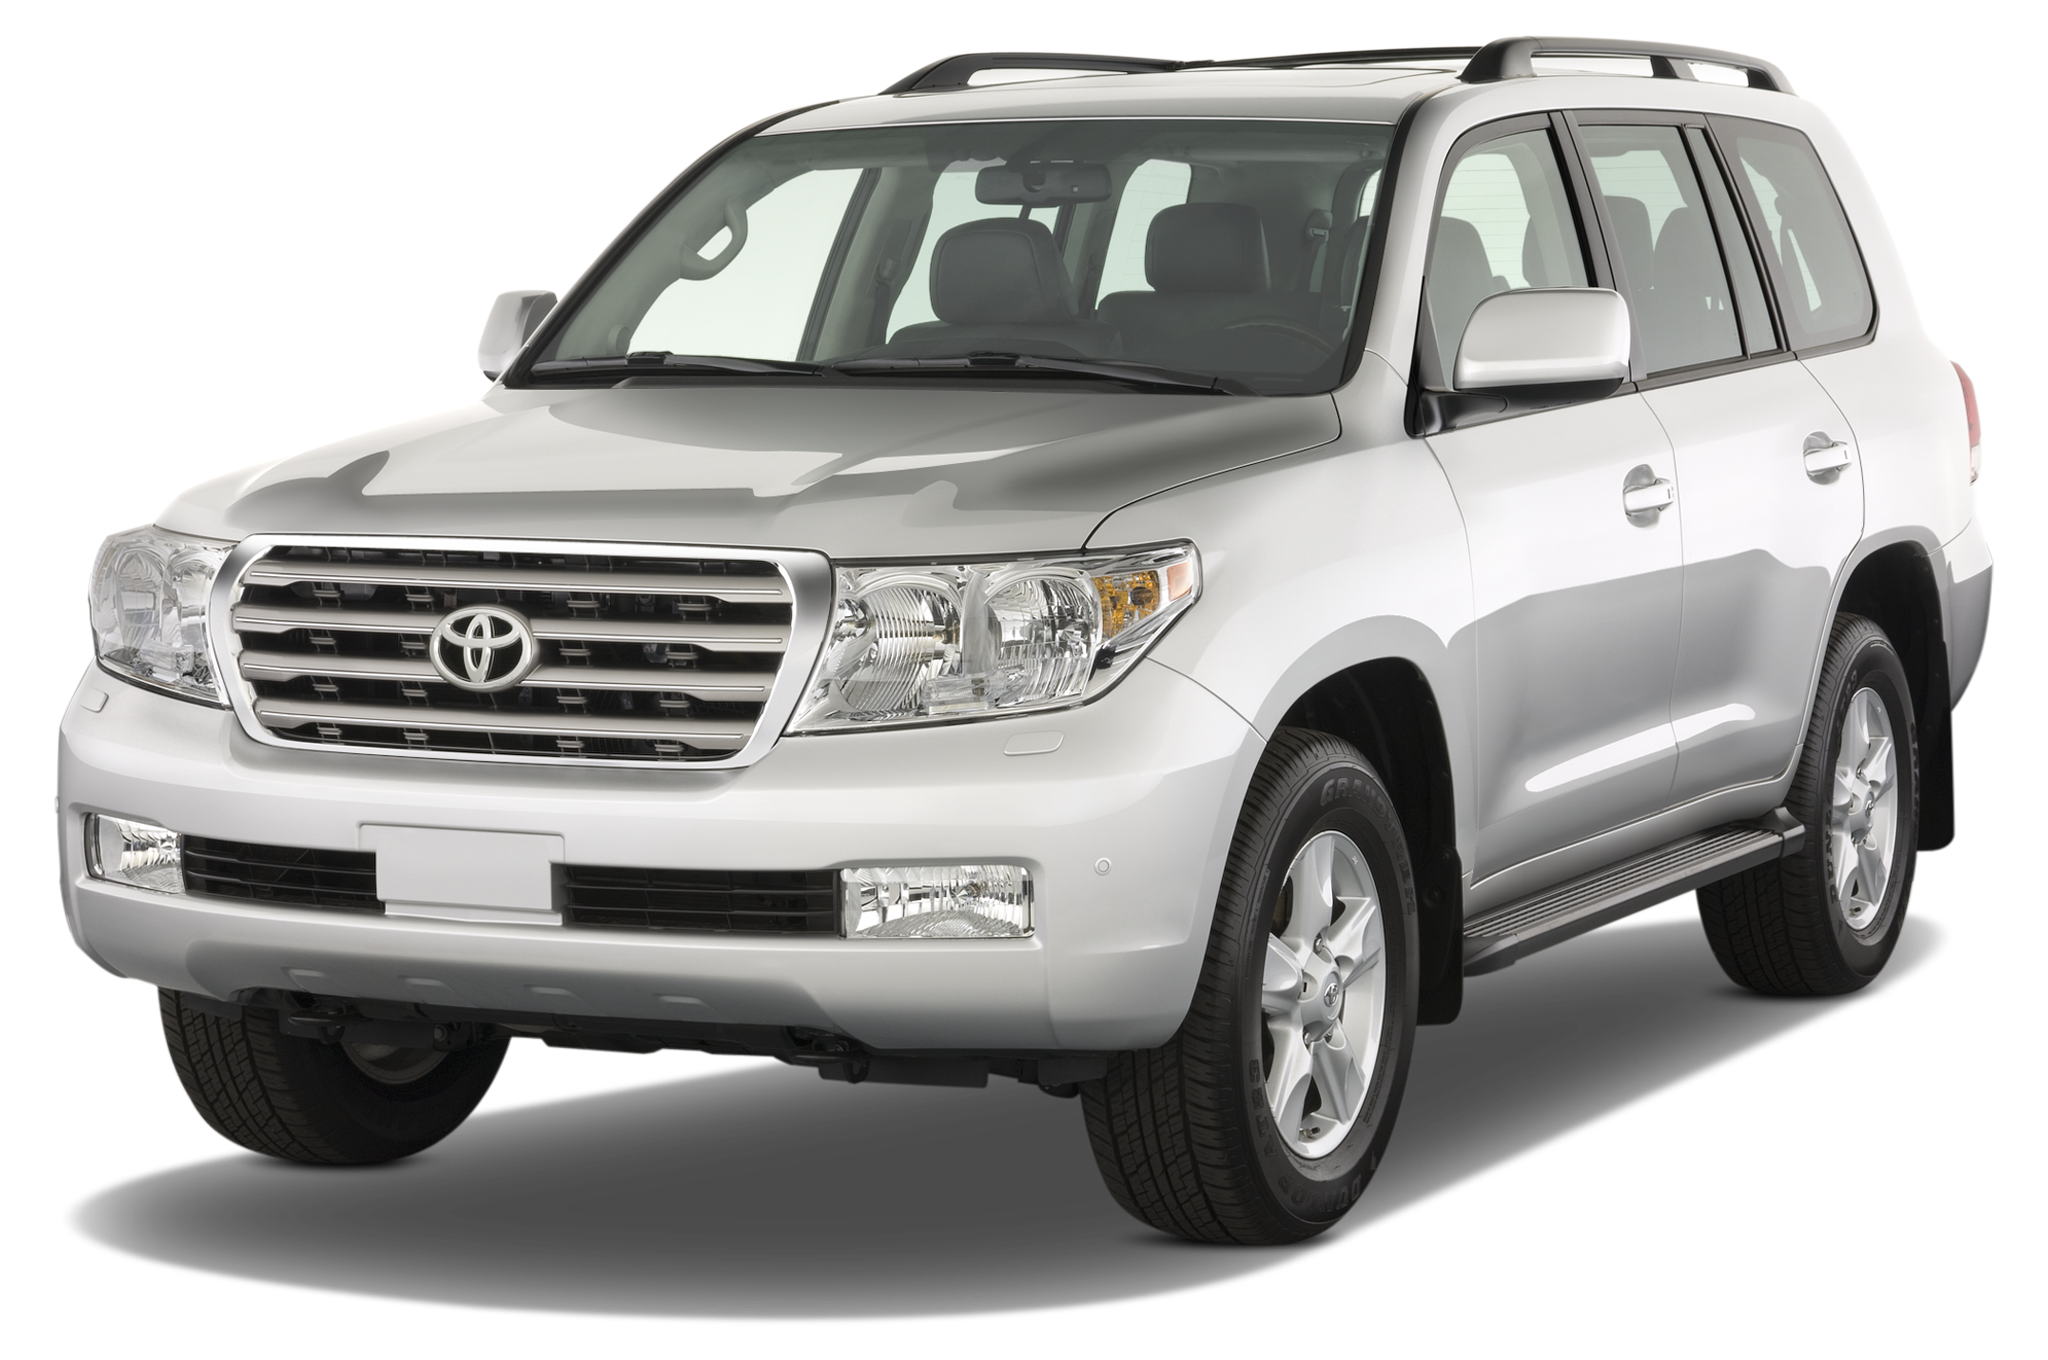 2013 toyota land cruiser gets freshened interior and exterior more standard equipment. Black Bedroom Furniture Sets. Home Design Ideas